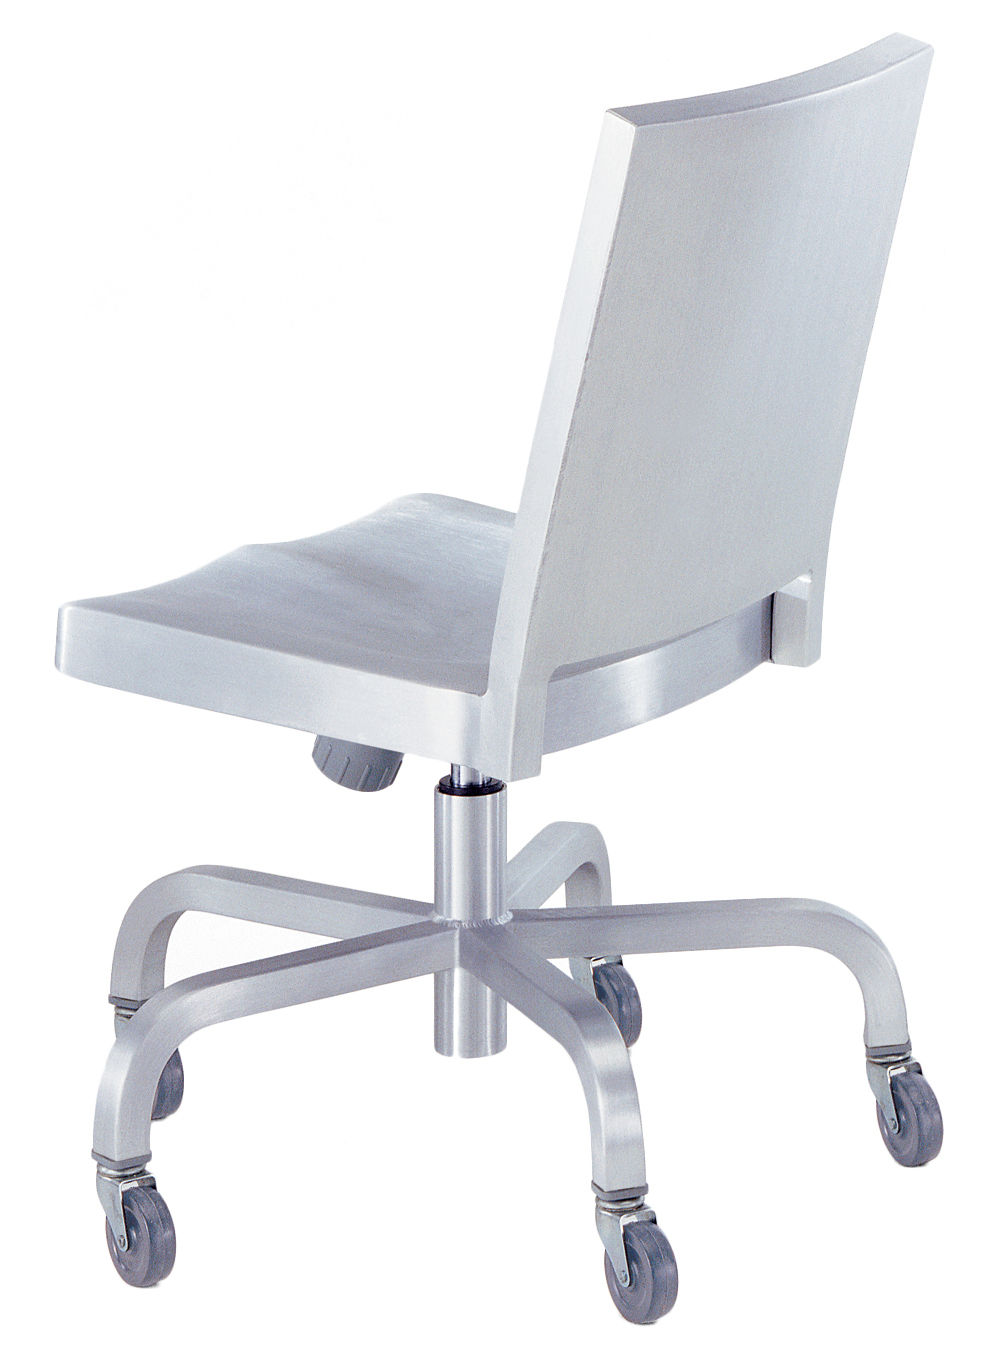 Furniture - Office Chairs - Hudson Outdoor Wheelchair - Casters by Emeco - Brushed aluminium - Brushed aluminium